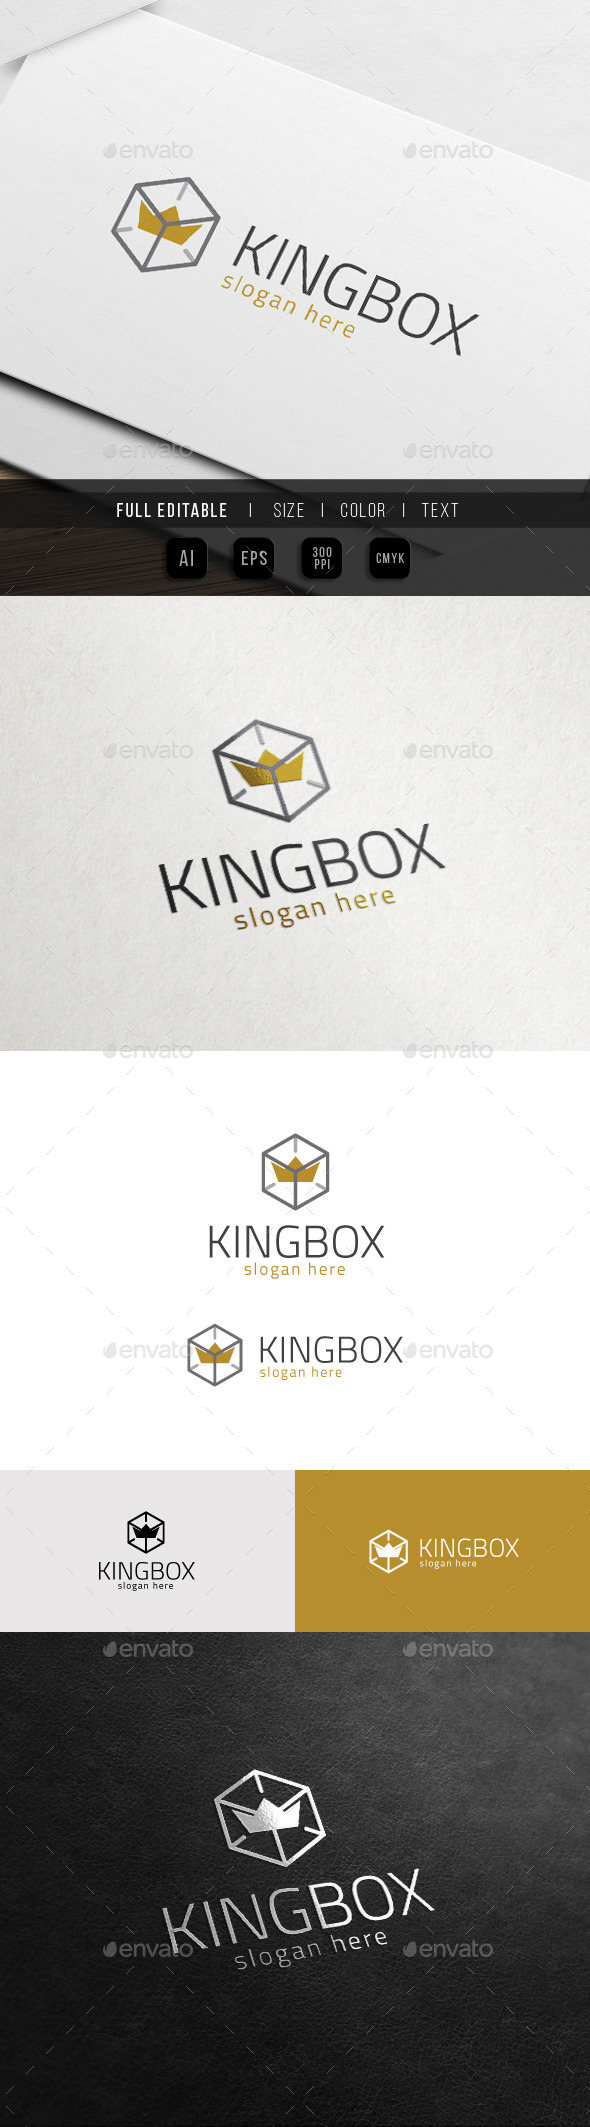 GraphicRiver King Box Royal Hosting Logo 10972381